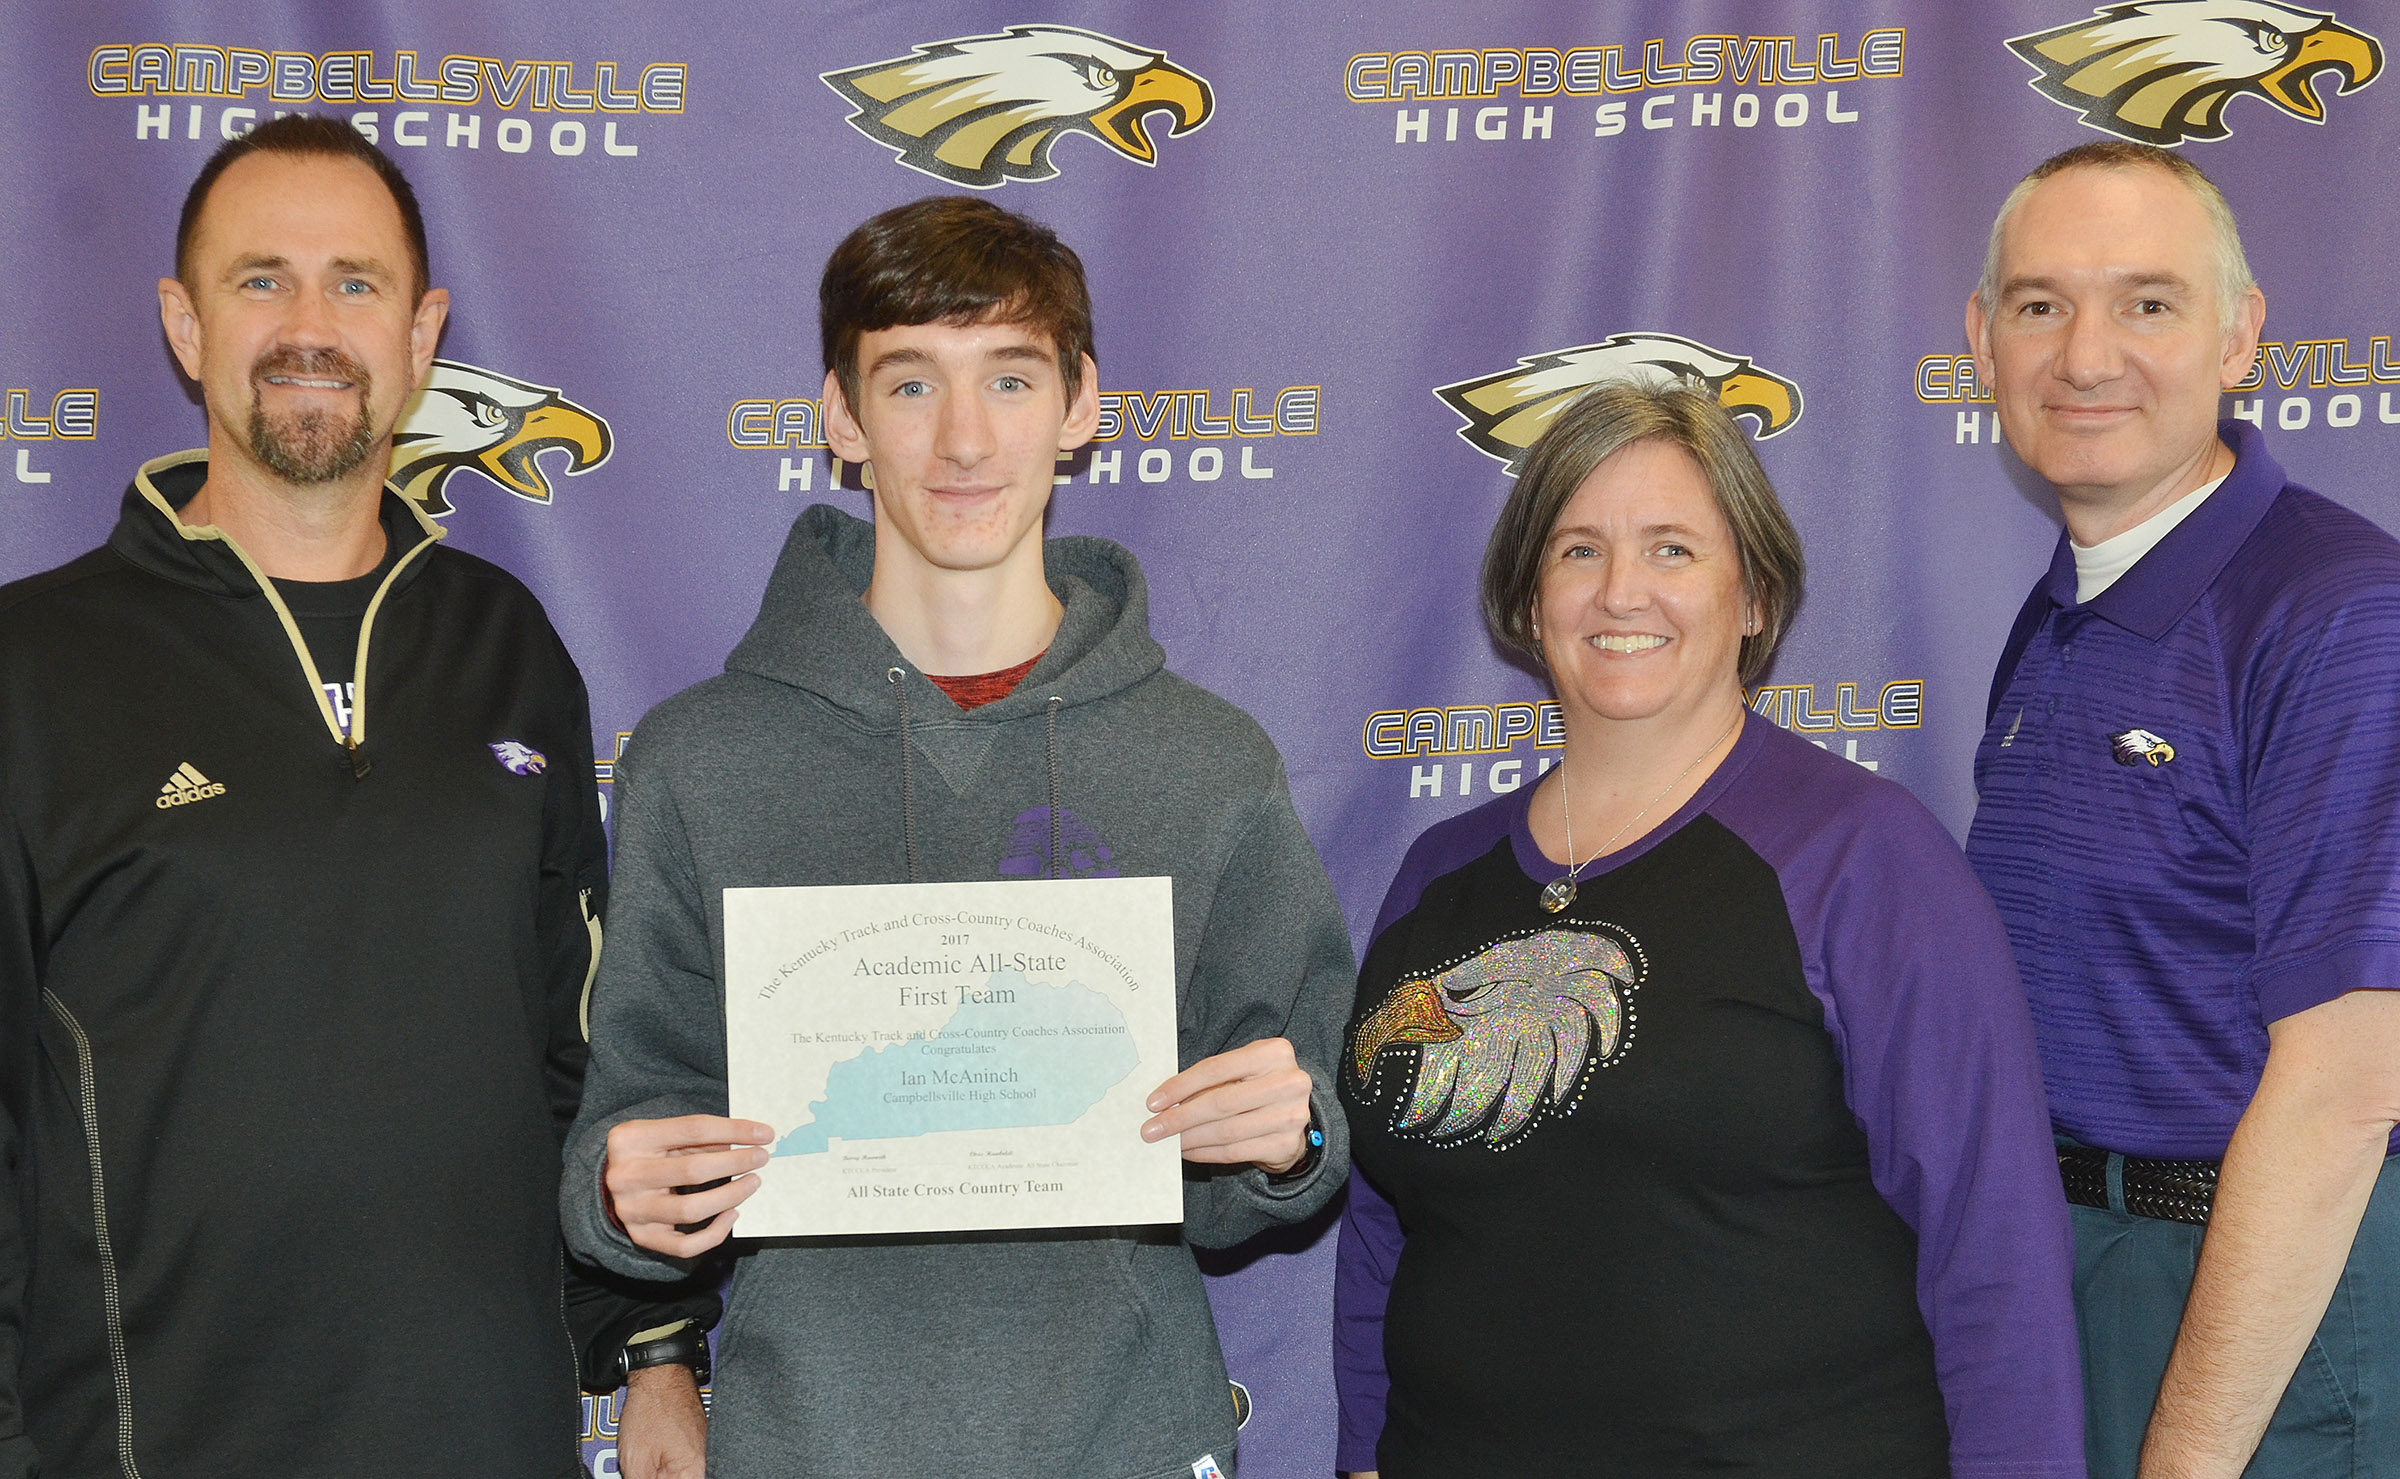 The Kentucky Track and Cross Country Coaches Association recently named Ian McAninch, a CHS junior, to the Academic All-State First Team. From left are CHS cross country coach Steve Doss, Ian McAninch and his parents Lori and Troy.